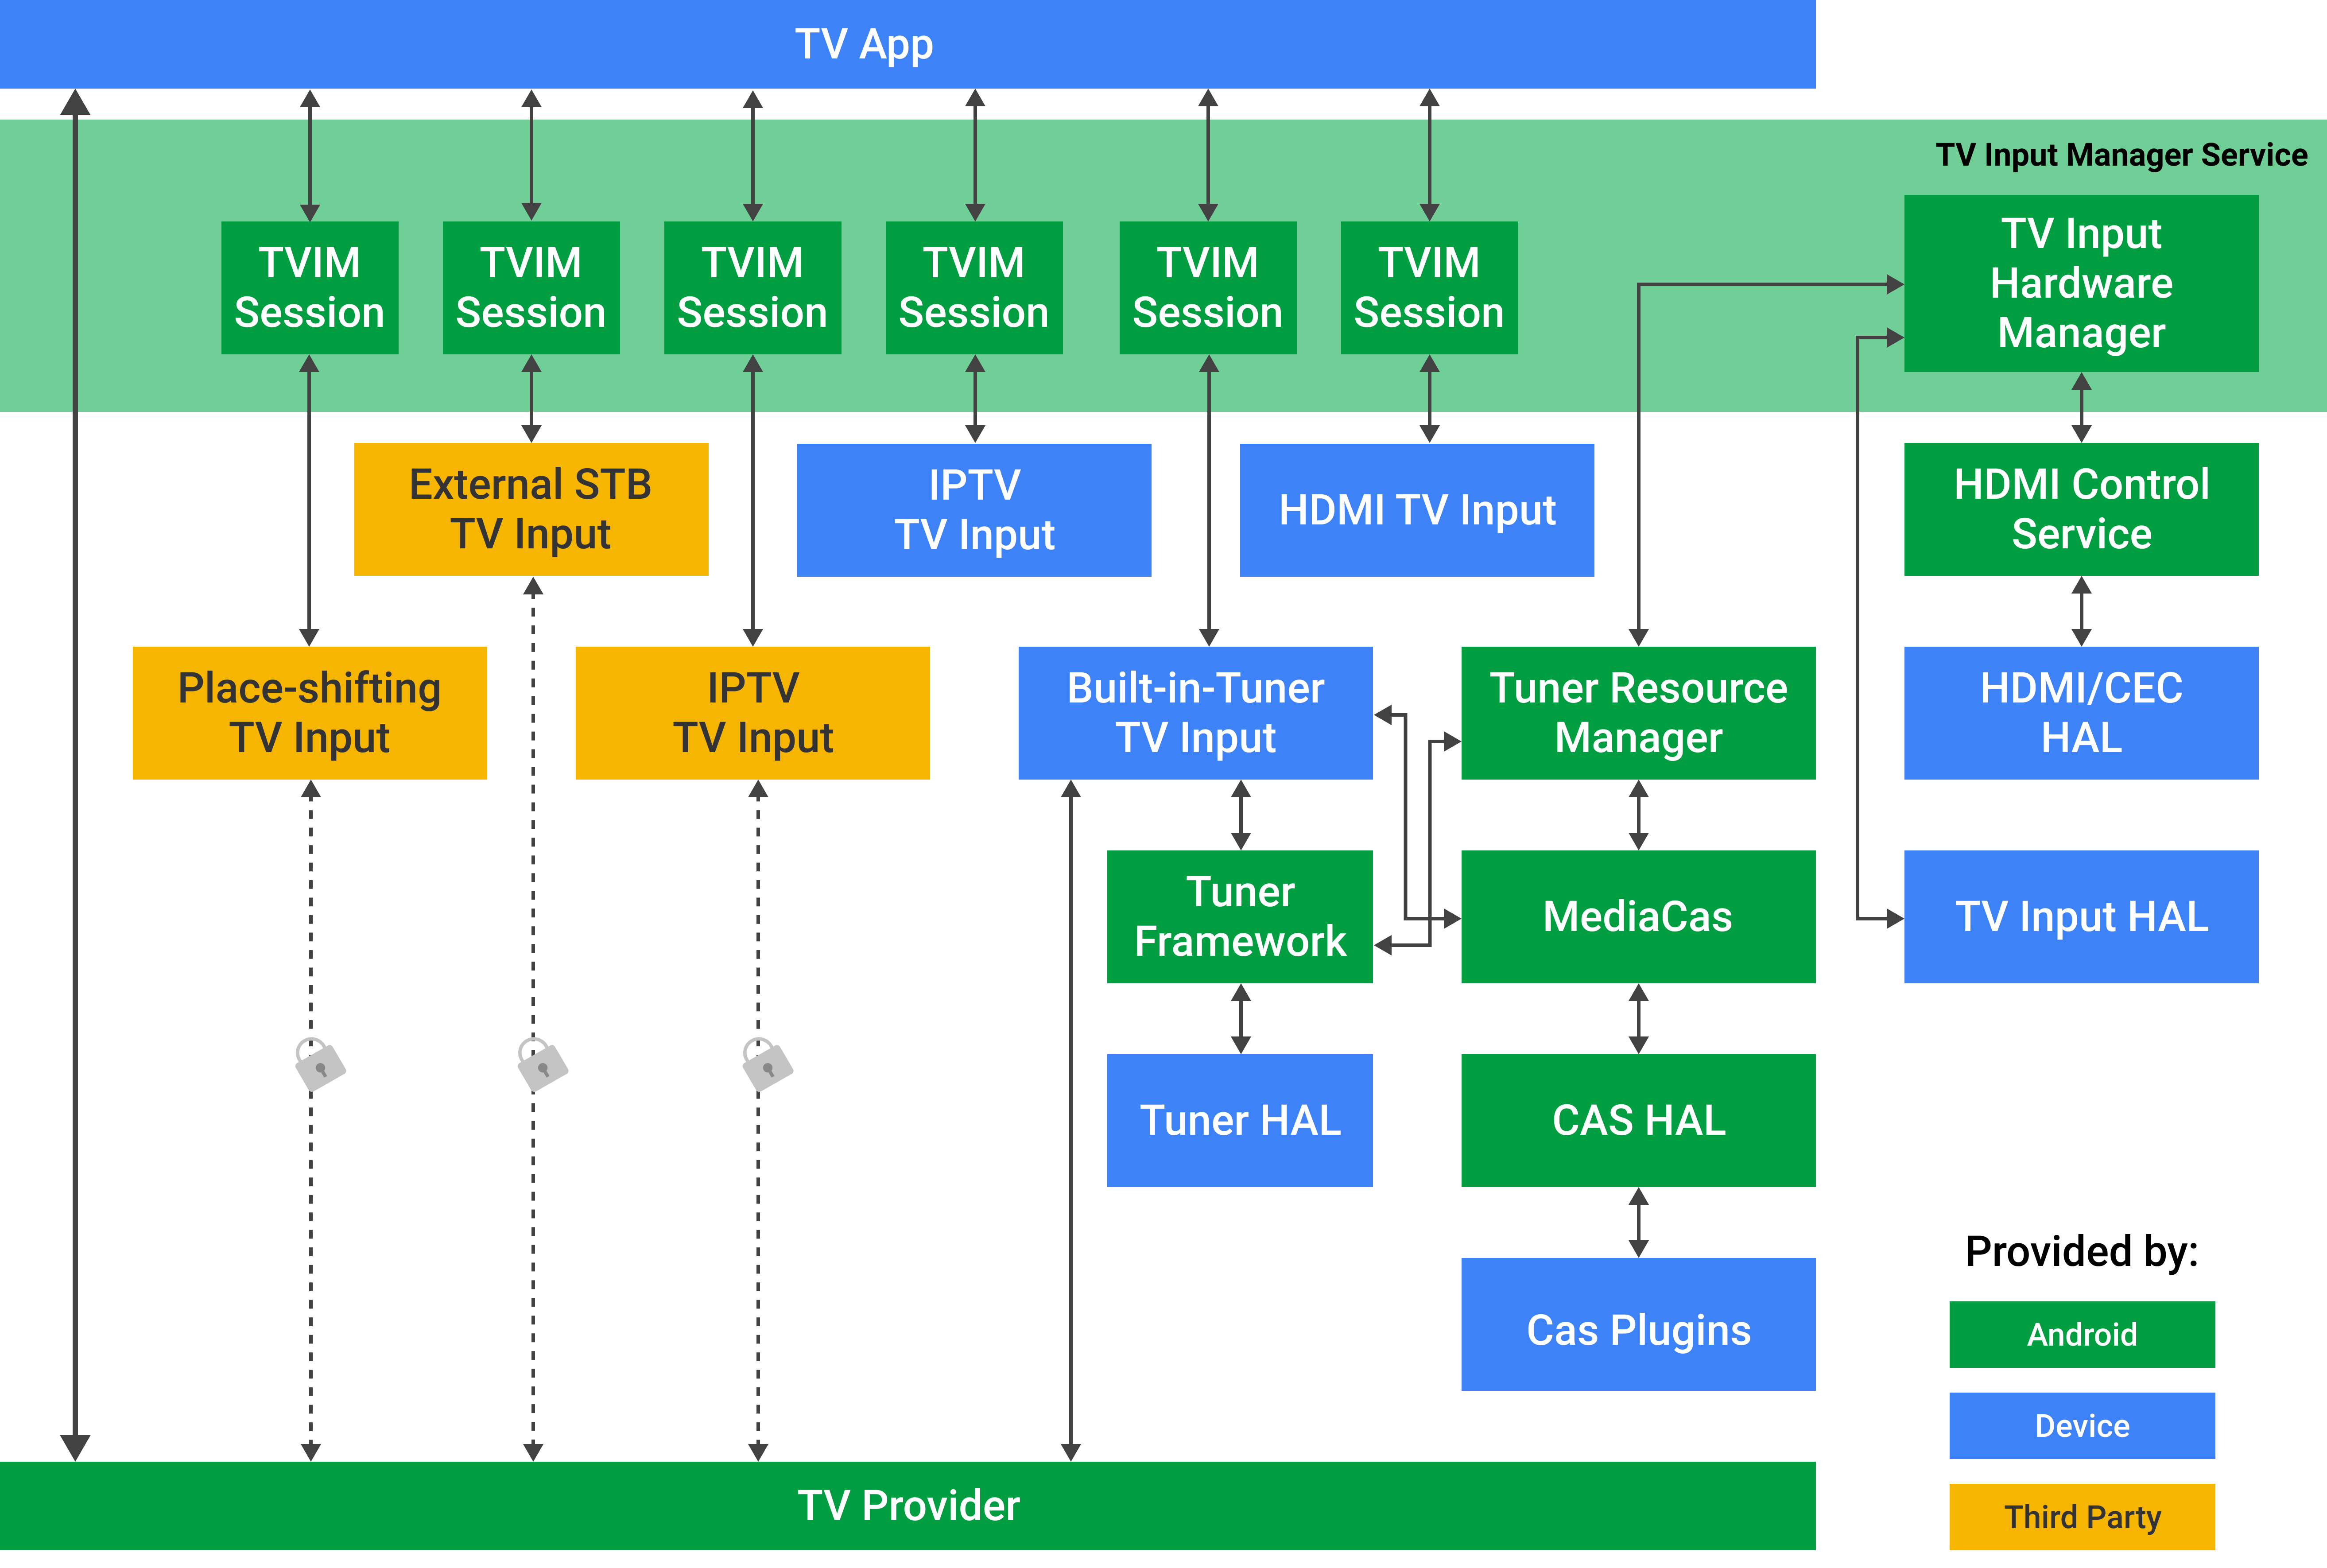 Overview of the Android TIF architecture